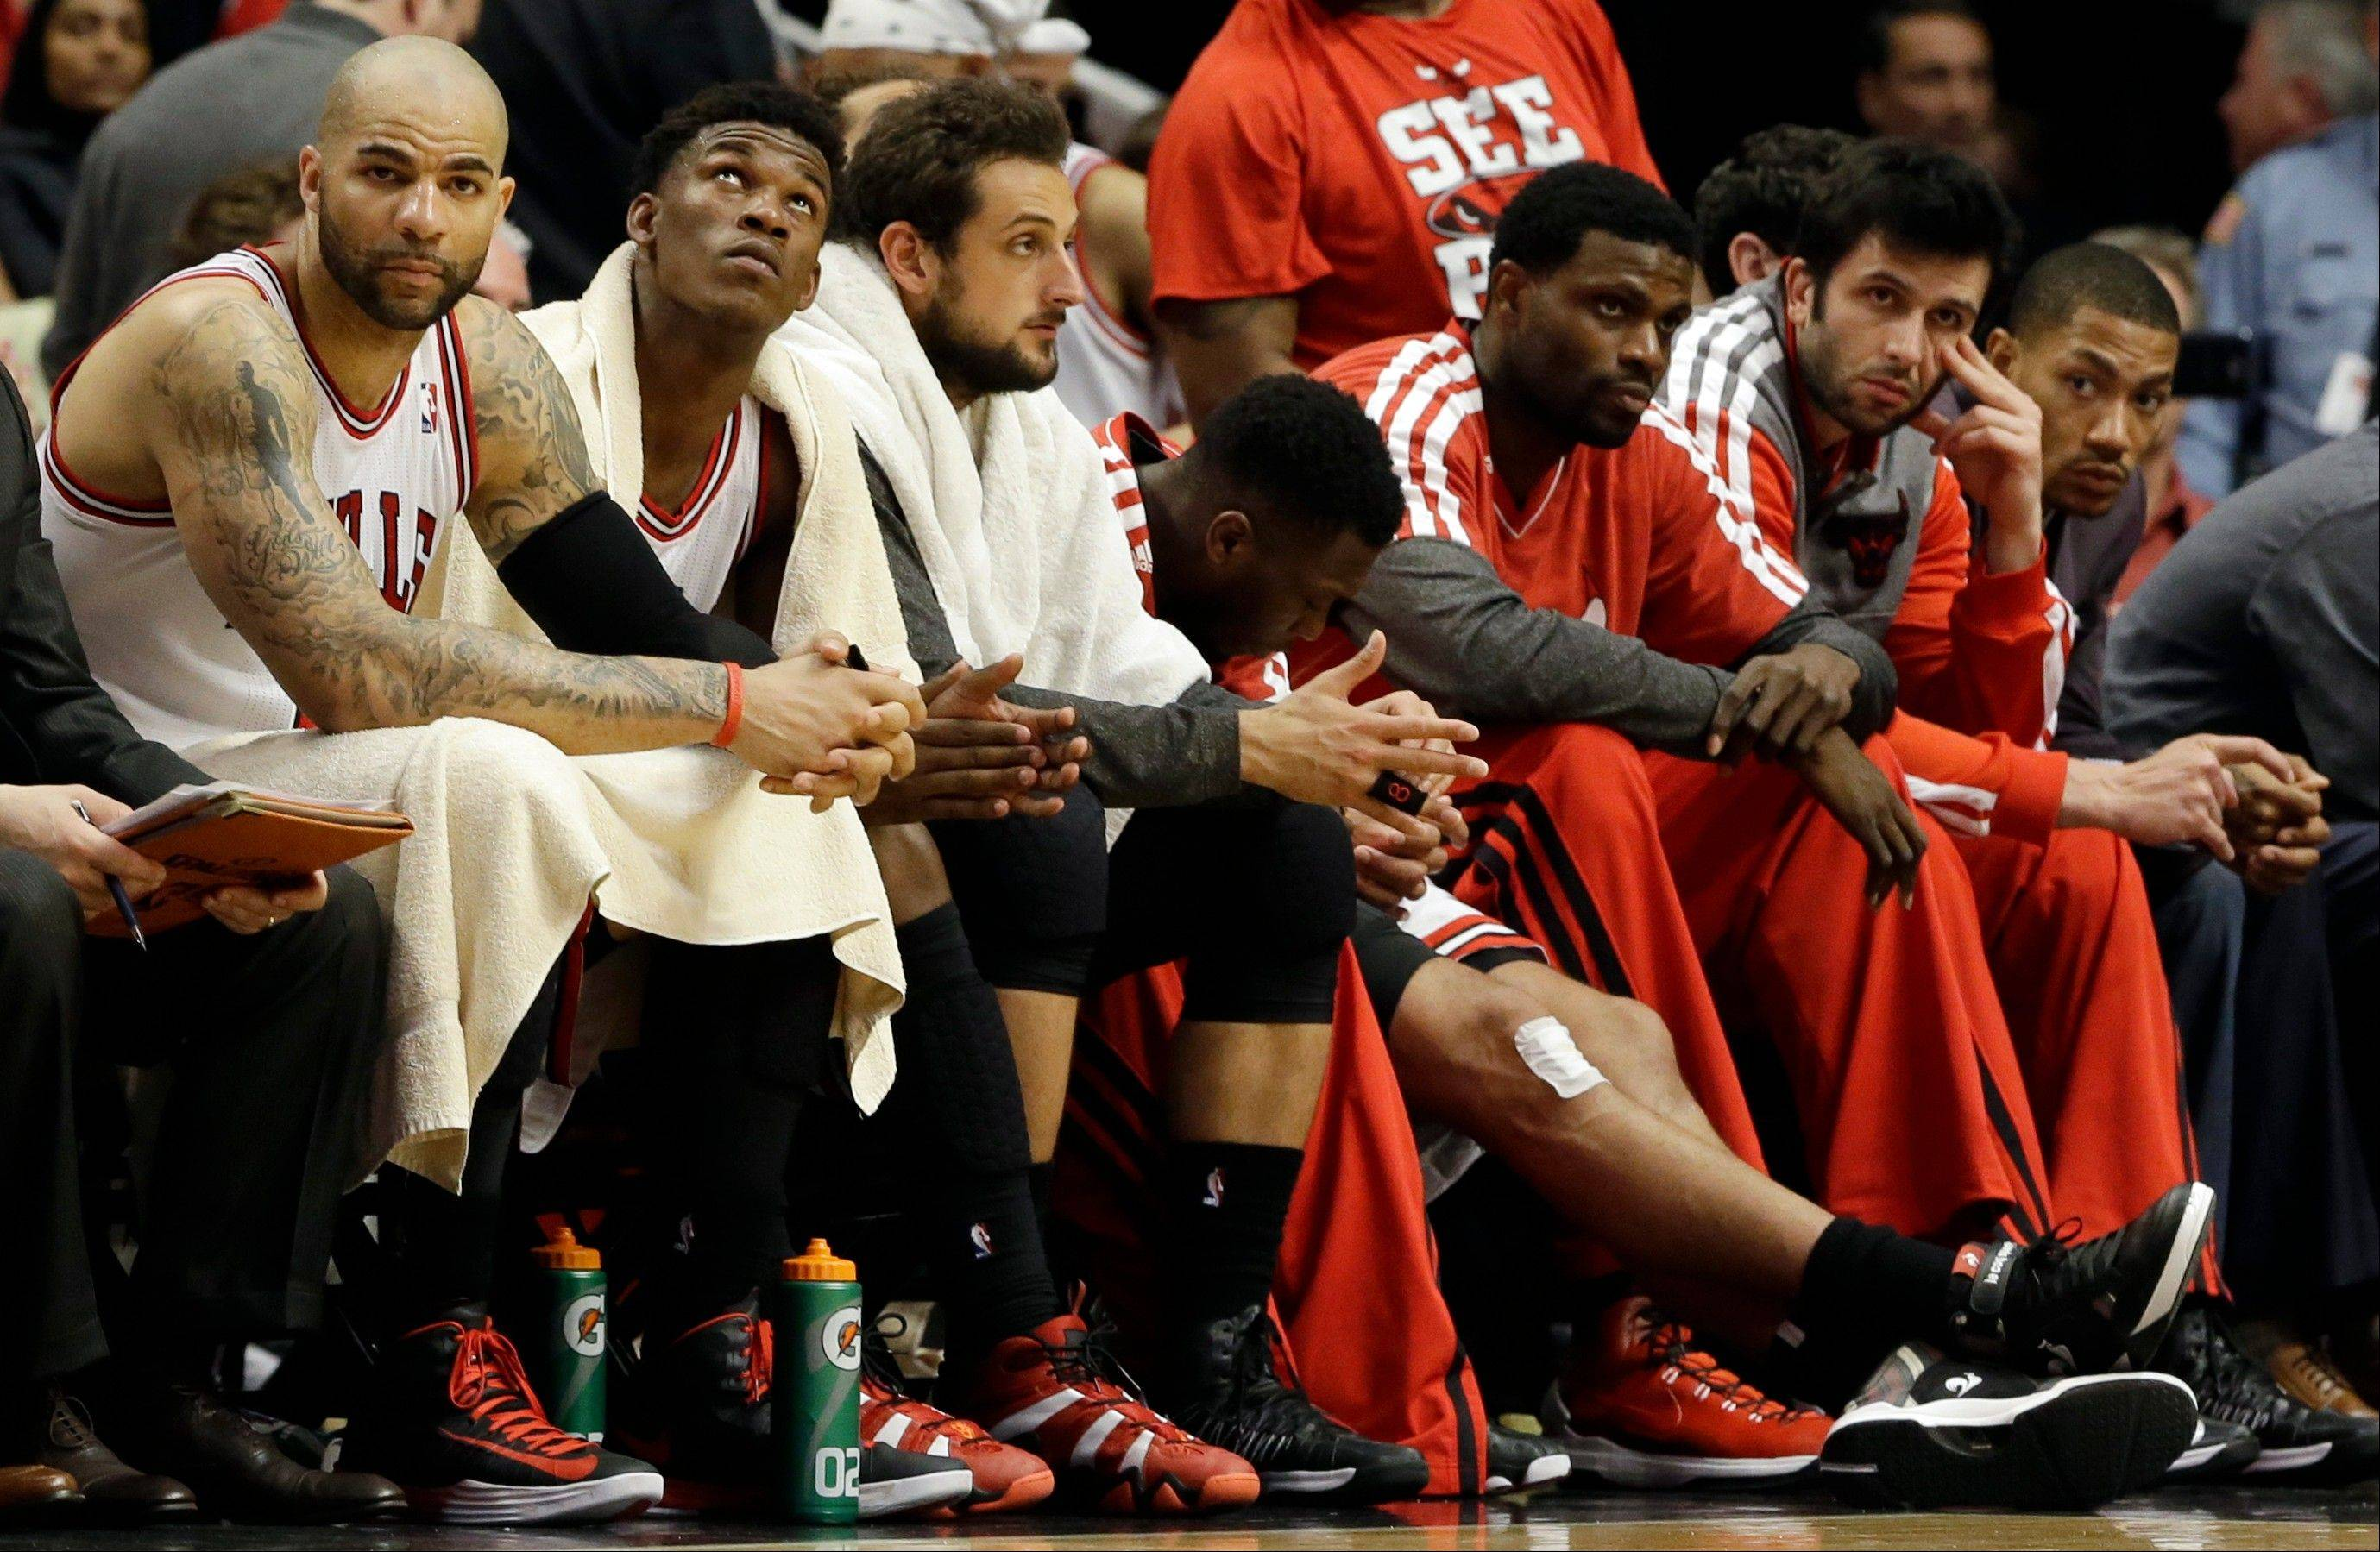 The Bulls look on during the second half of Game 4 against the Miami Heat on Monday night. Miami won 88-65.